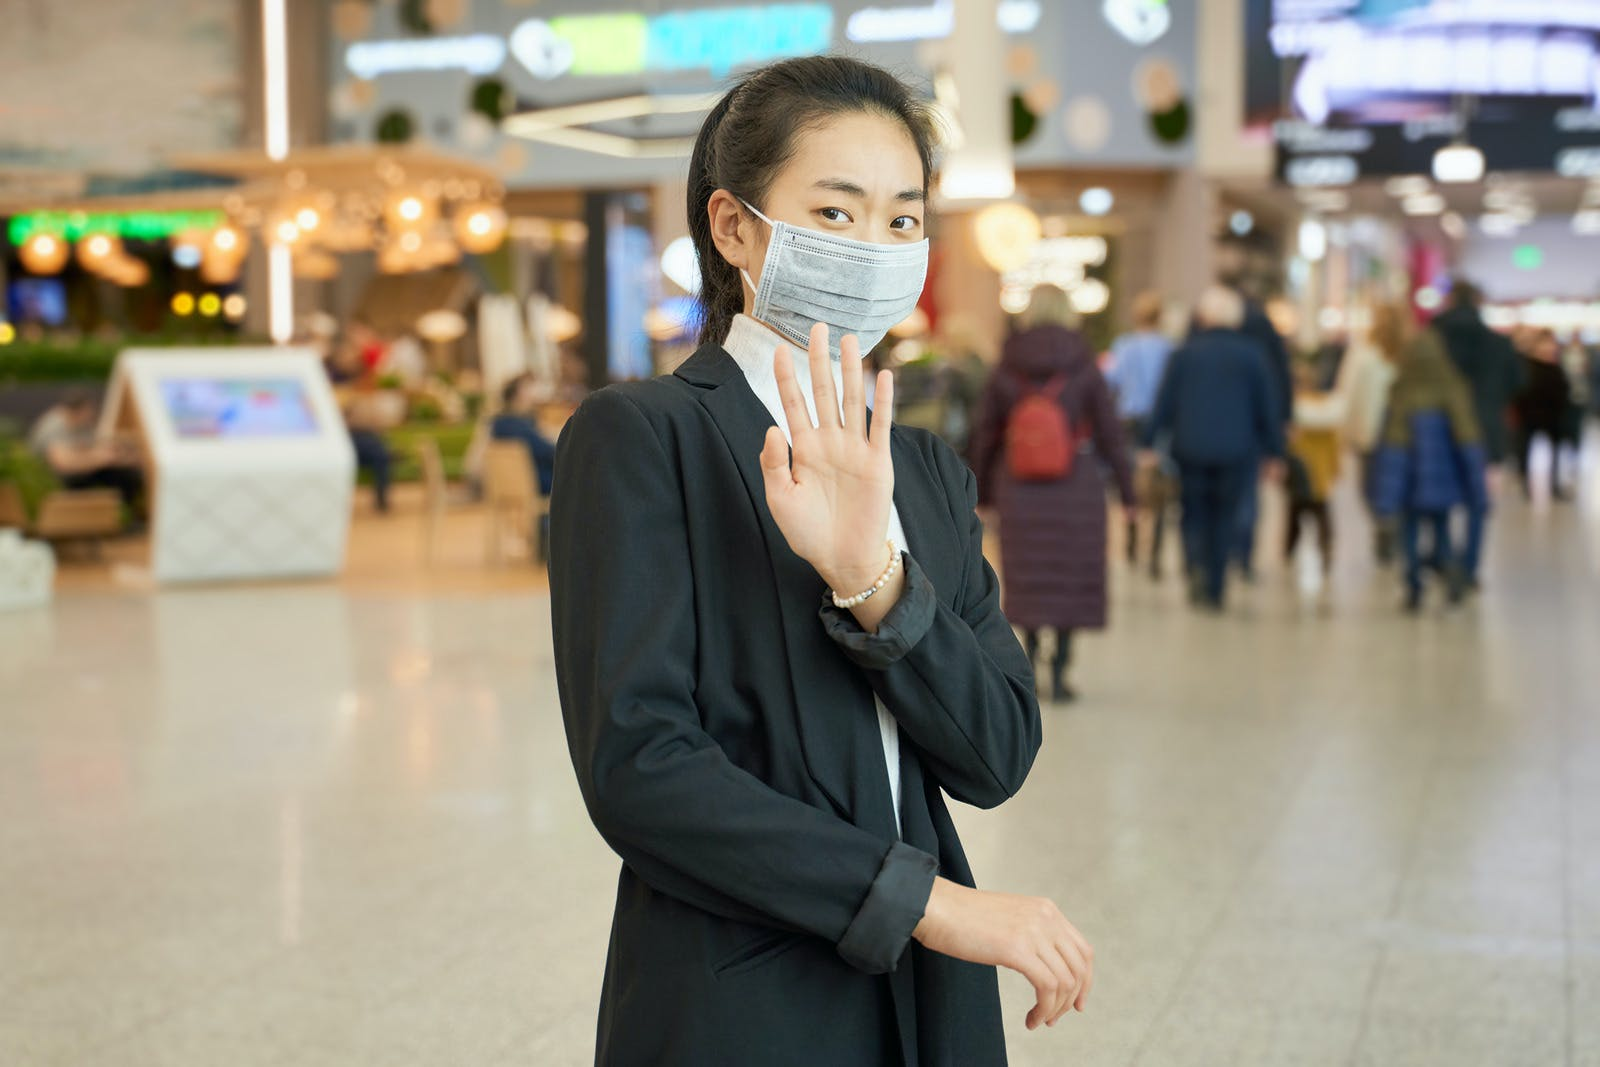 Female wears medical mask to protect against virus